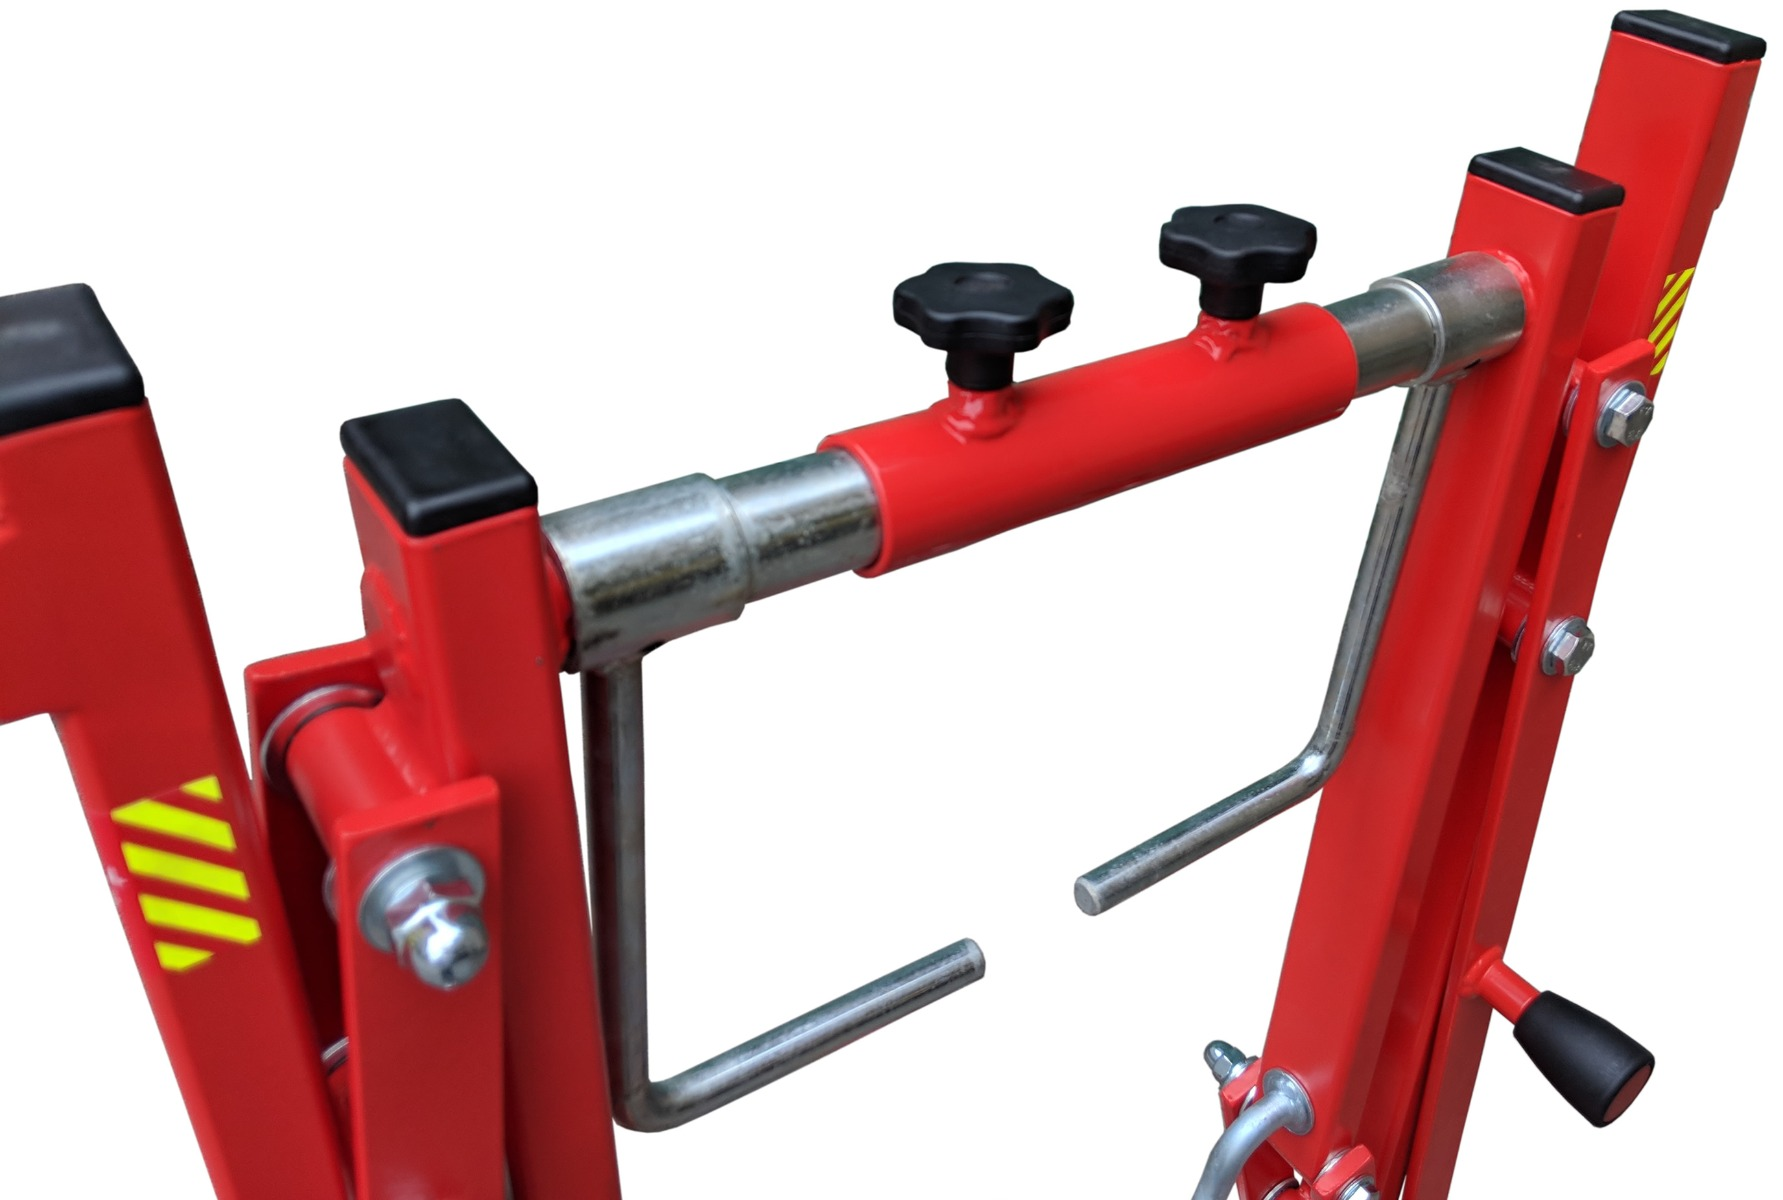 Roller Stand Safety Storage System - R4S